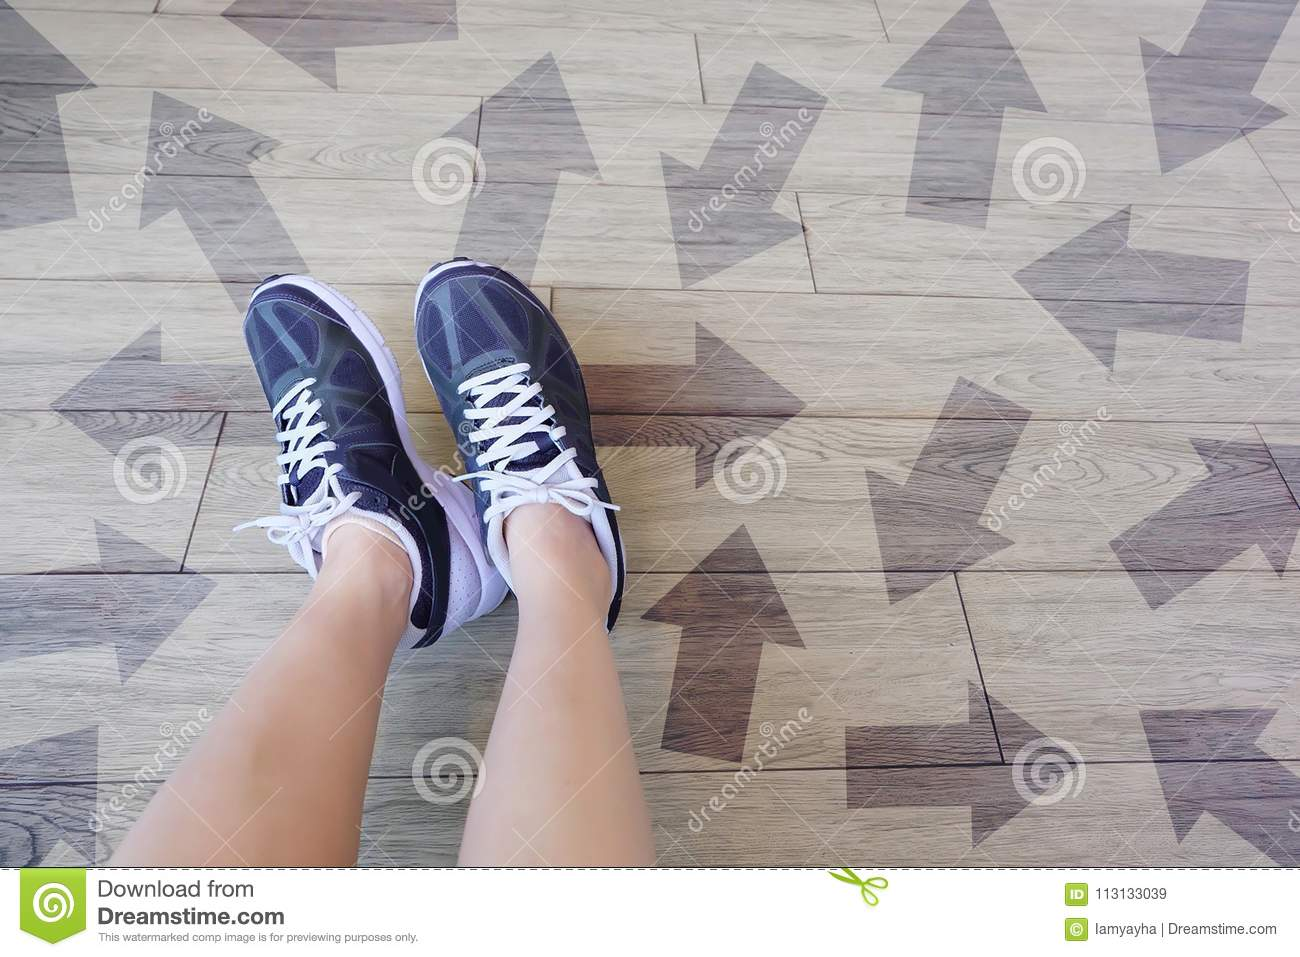 Many Direction Arrow Choices. Selfie of Running Shoes with Drawn Arrows. Woman Violet Sneakers with Decisions on Wooden Floor Back